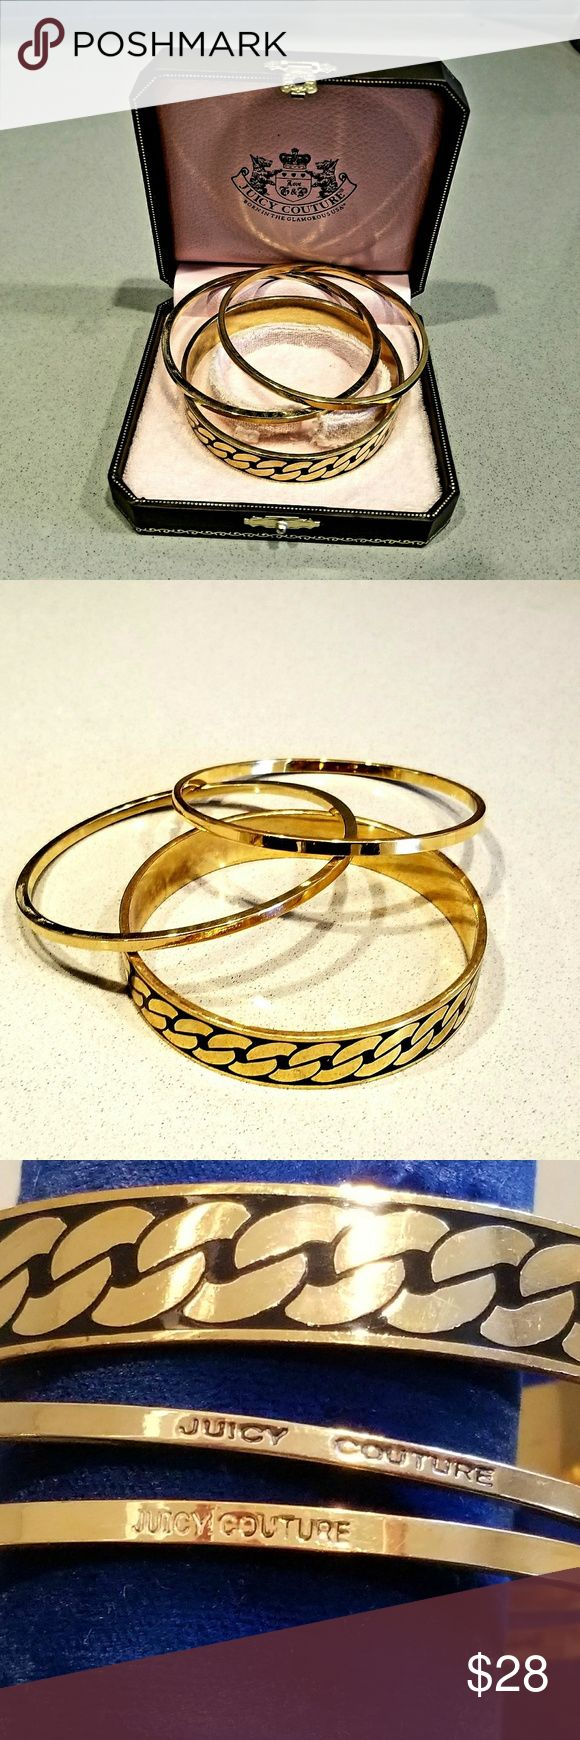 JUICY COUTURE BANGLE BRACELETS Three bras/gold color bangles with Juicy Culture box. To bangles are hallmarked. One bangle is enameled. Juicy Couture Jewelry Bracelets